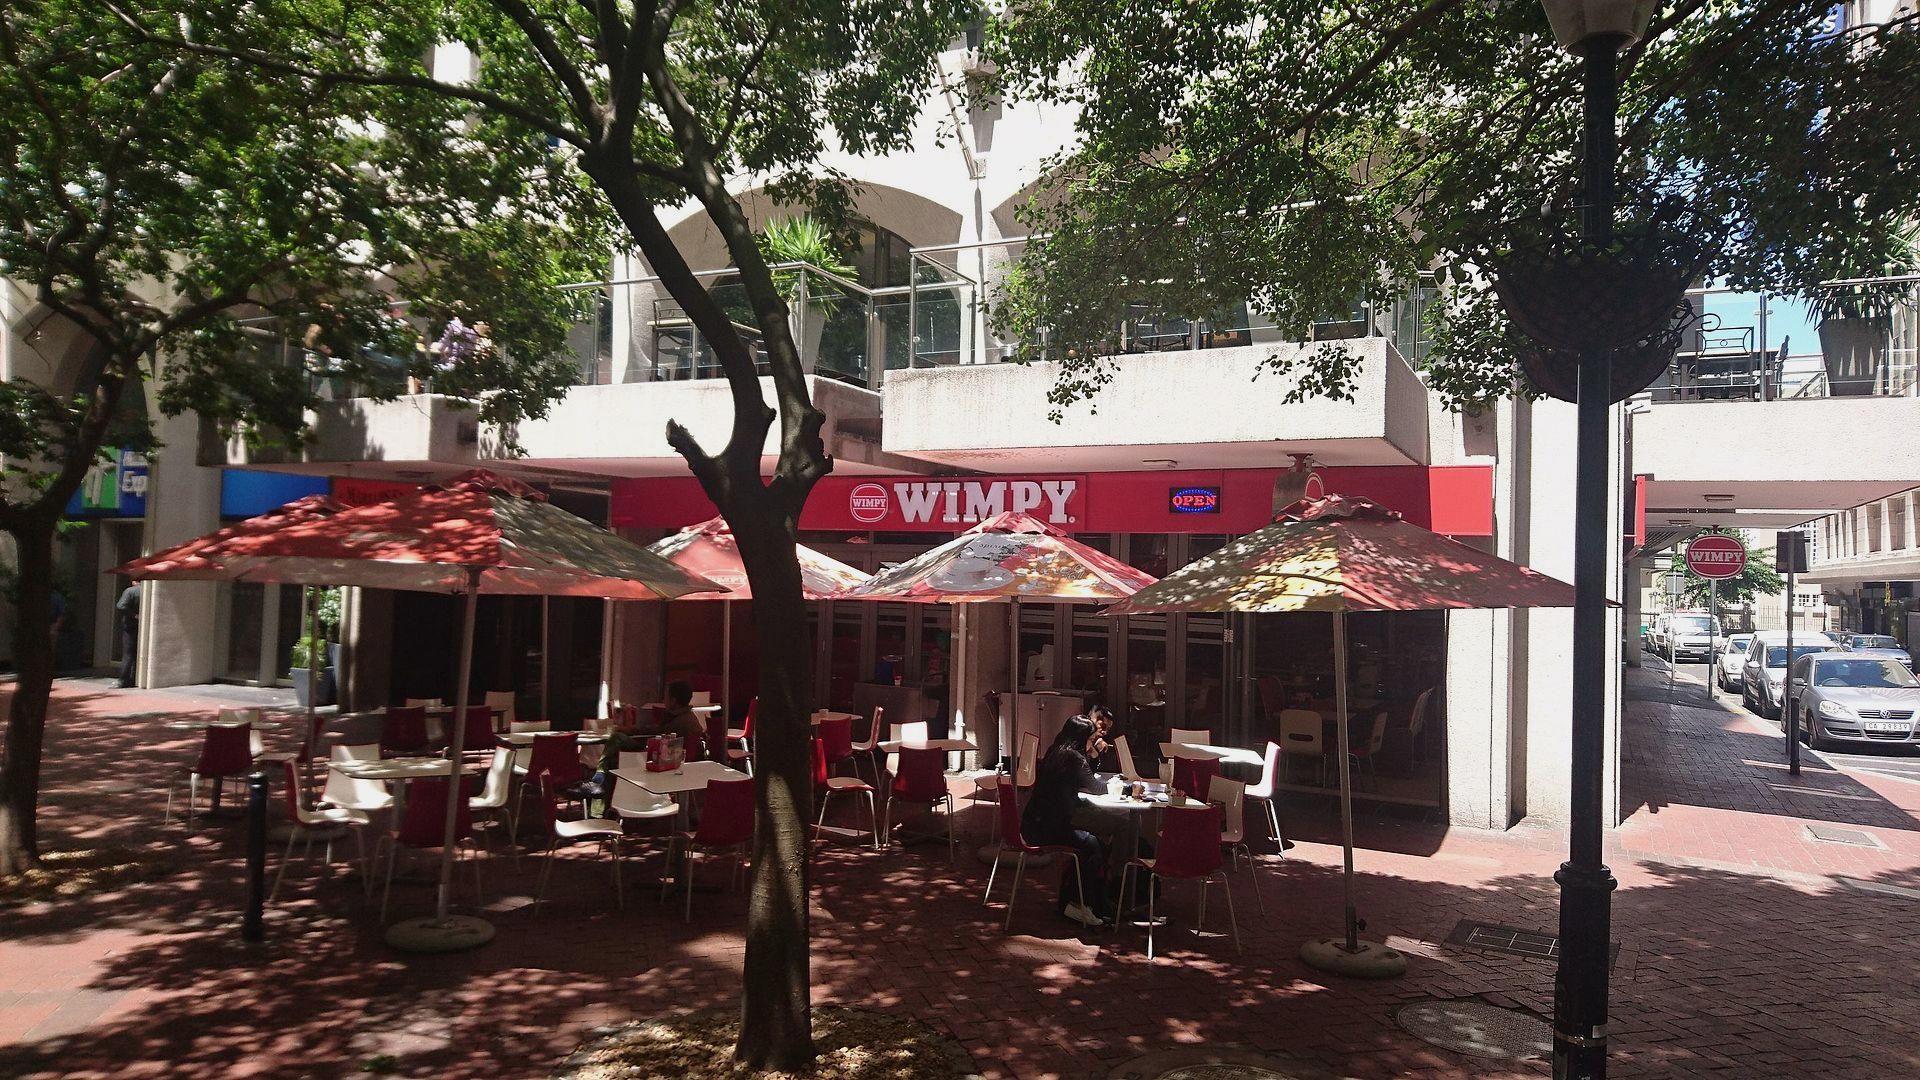 Ask Geoffrey: What Happened to Chicago Burger Chain Wimpy's